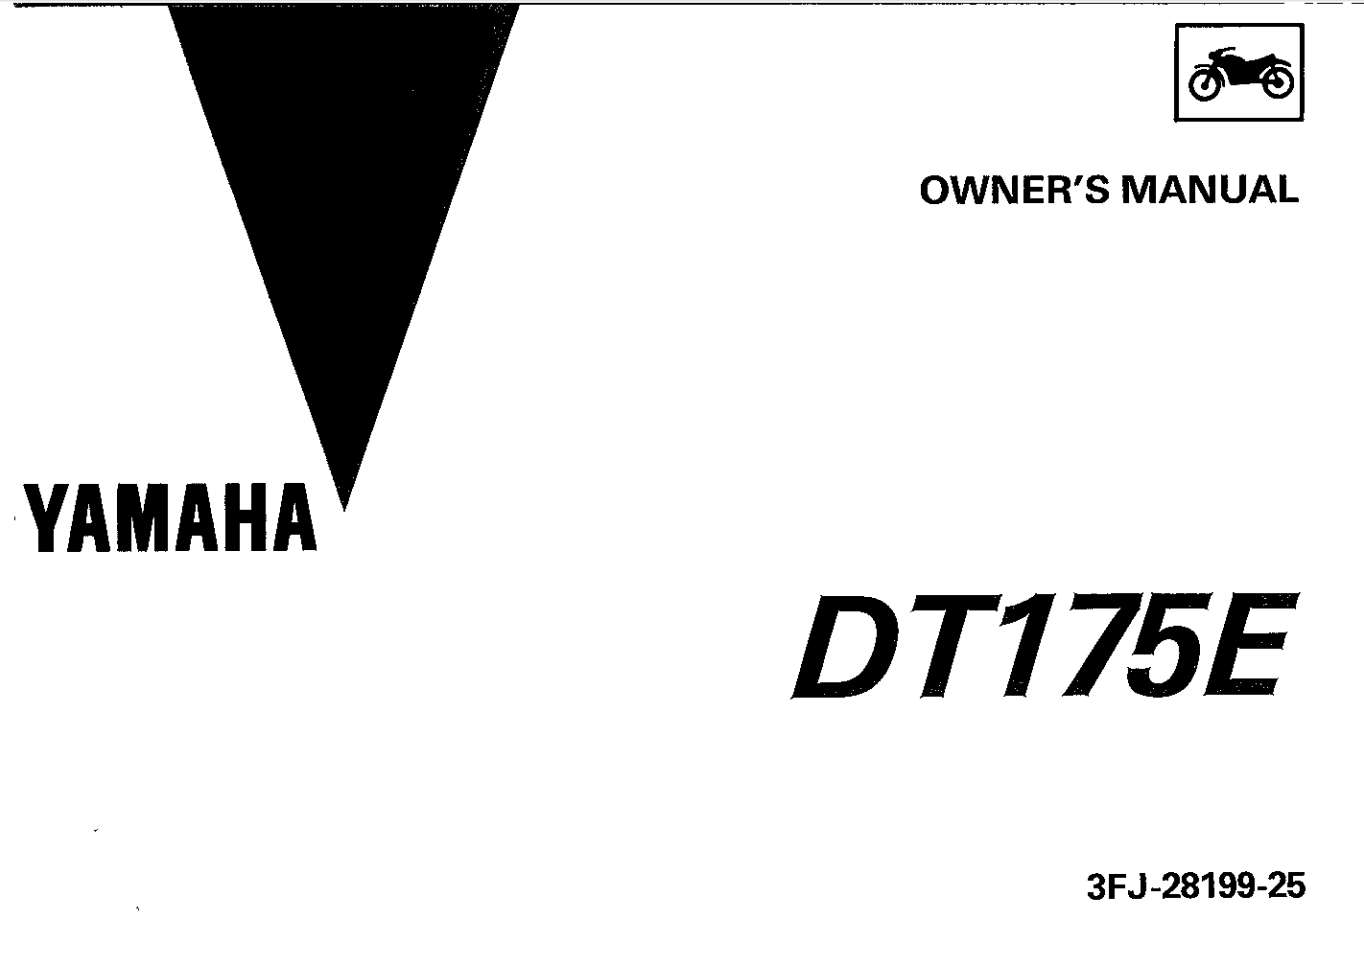 Yamaha DT175 E 1993 Owner's Manual